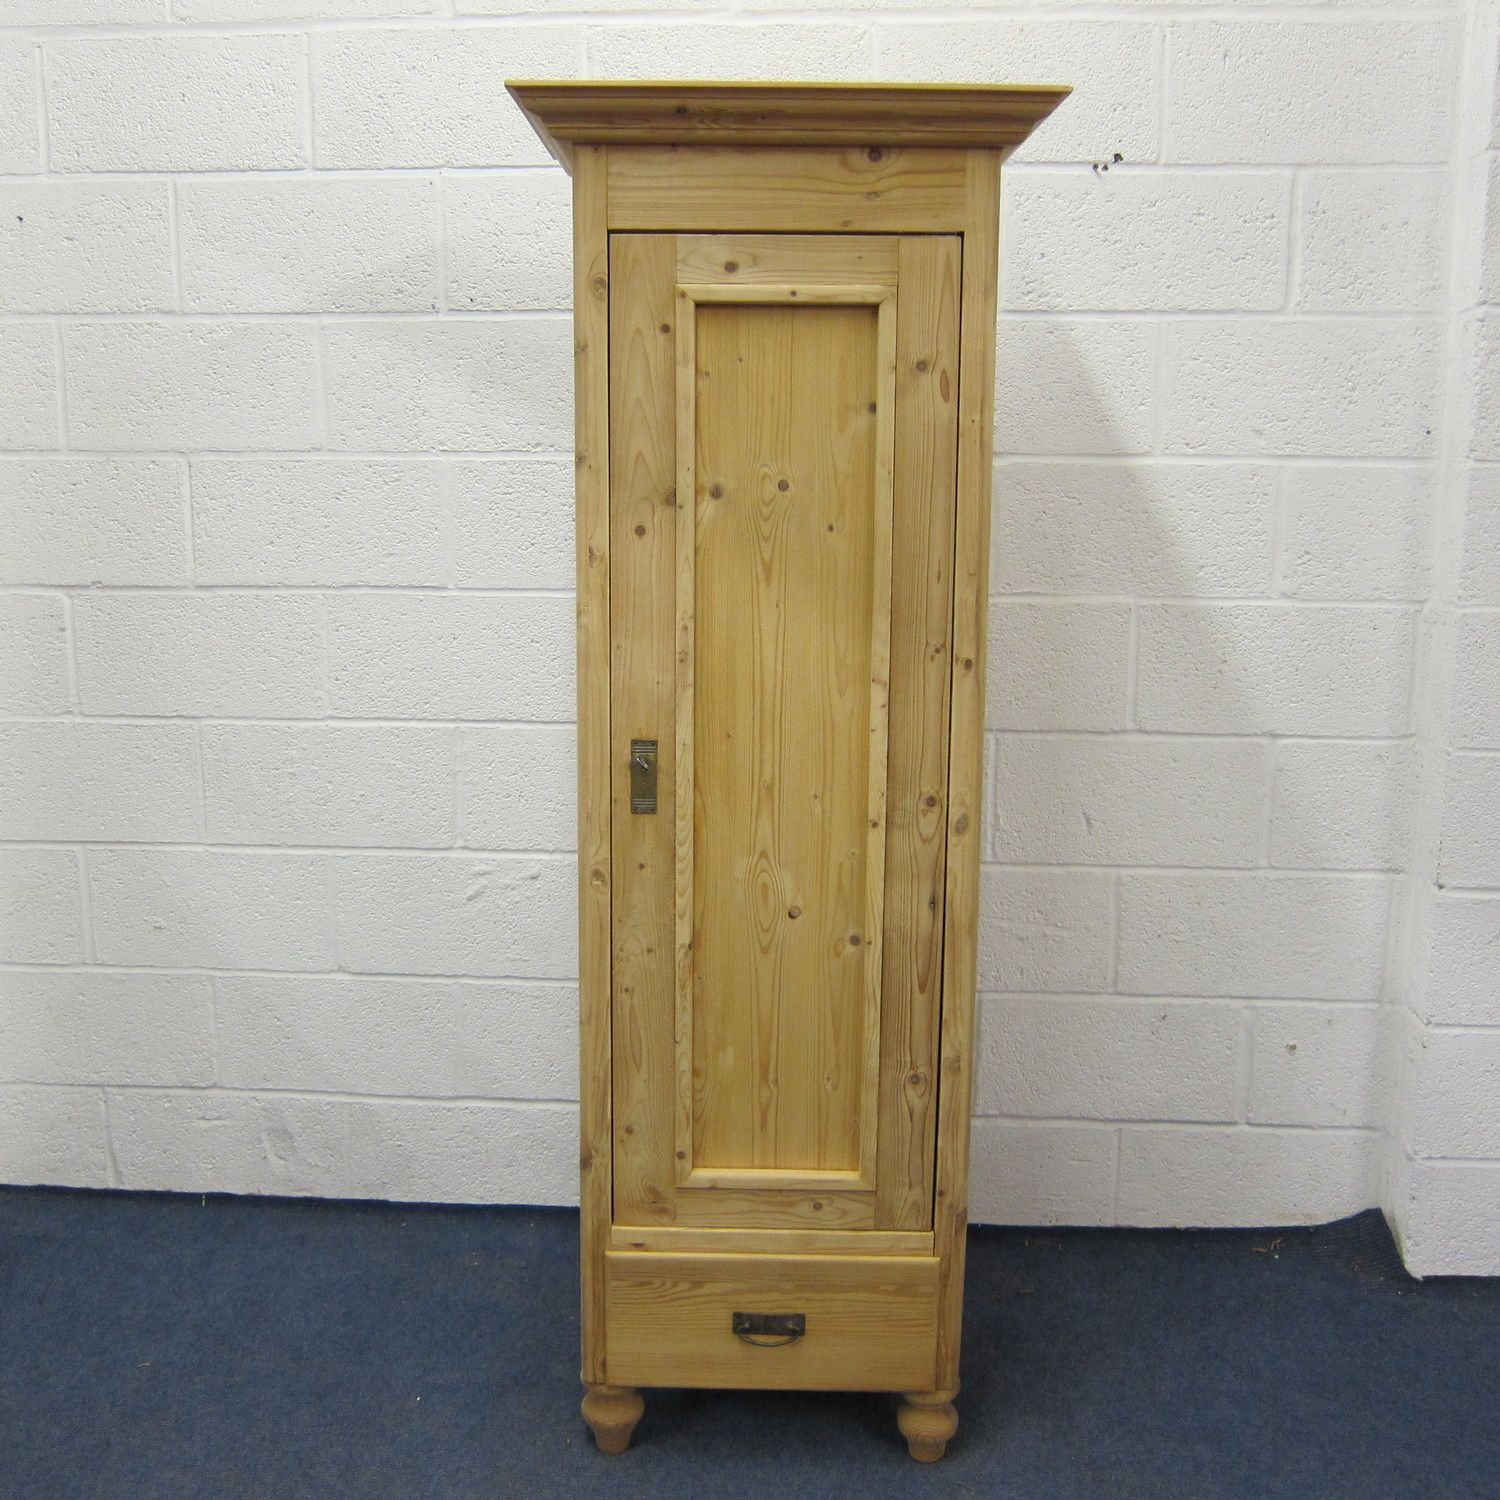 Tall slim pine cupboard (z7602b) — Pinefinders Antique Pine Furniture  Warehouse - Tall Slim Pine Cupboard (z7602b) — Pinefinders Antique Pine